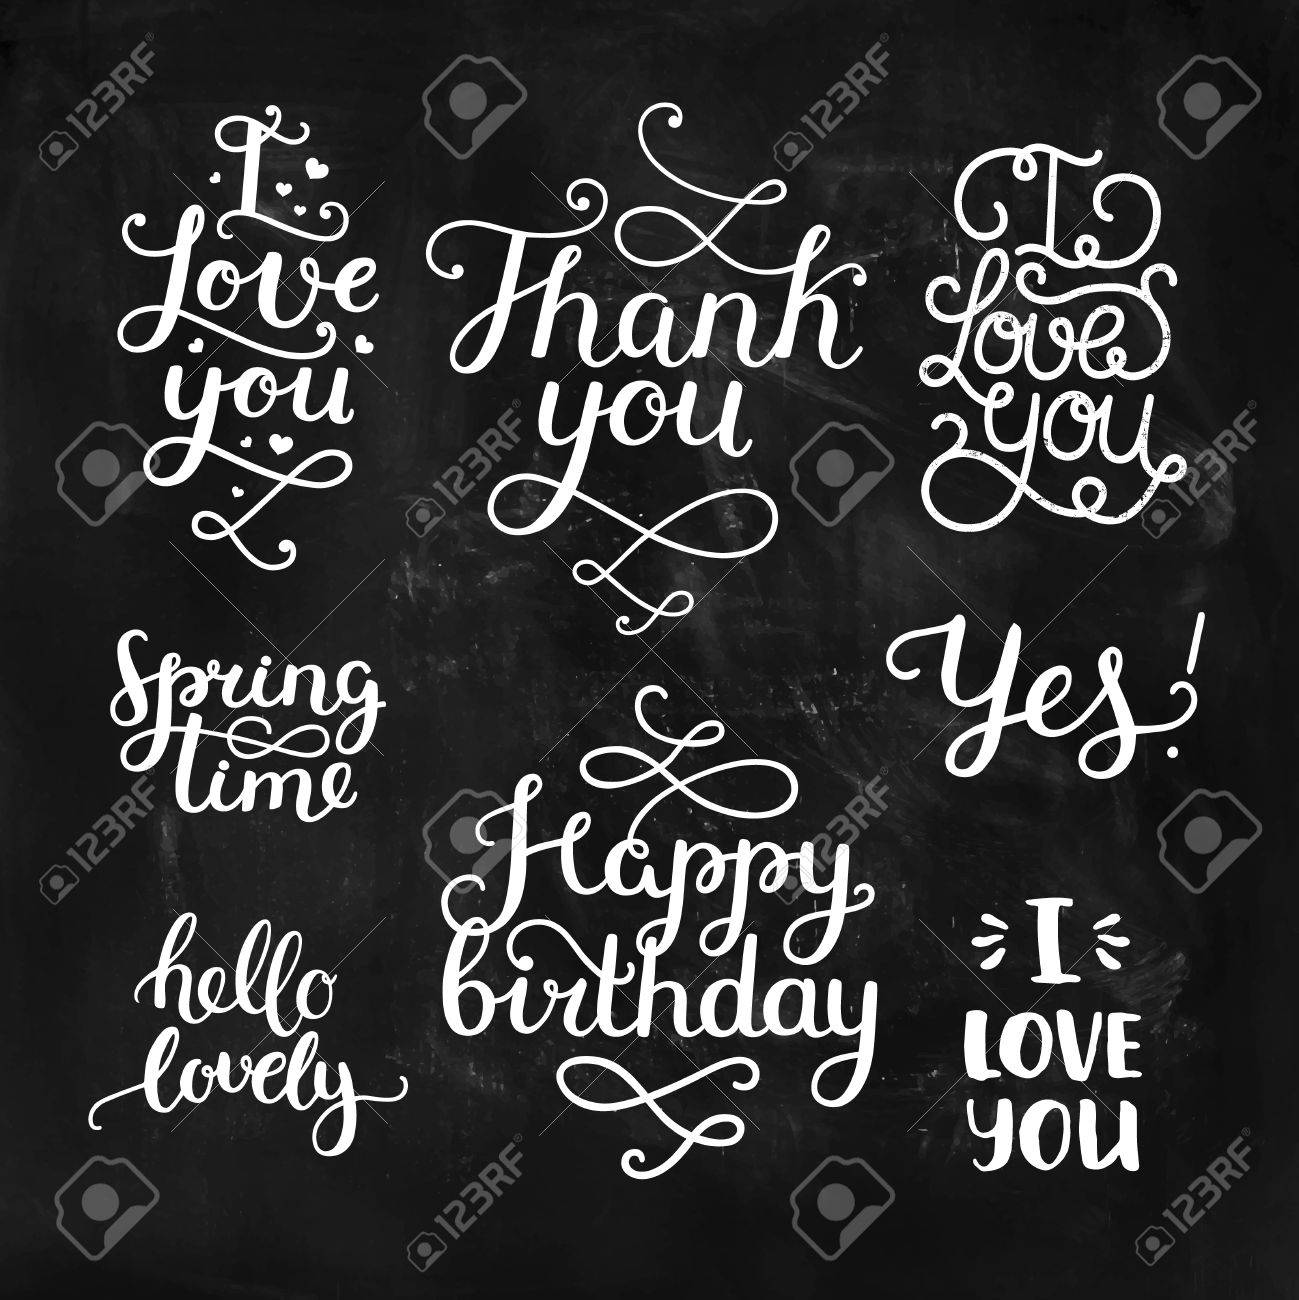 Vector photo overlays, handdrawn lettering collection, love and romantic quote. I love you, Thank you, Spring time, Happy birthday, hello lovely. For scrapbook, greeting cards and more - 51082383